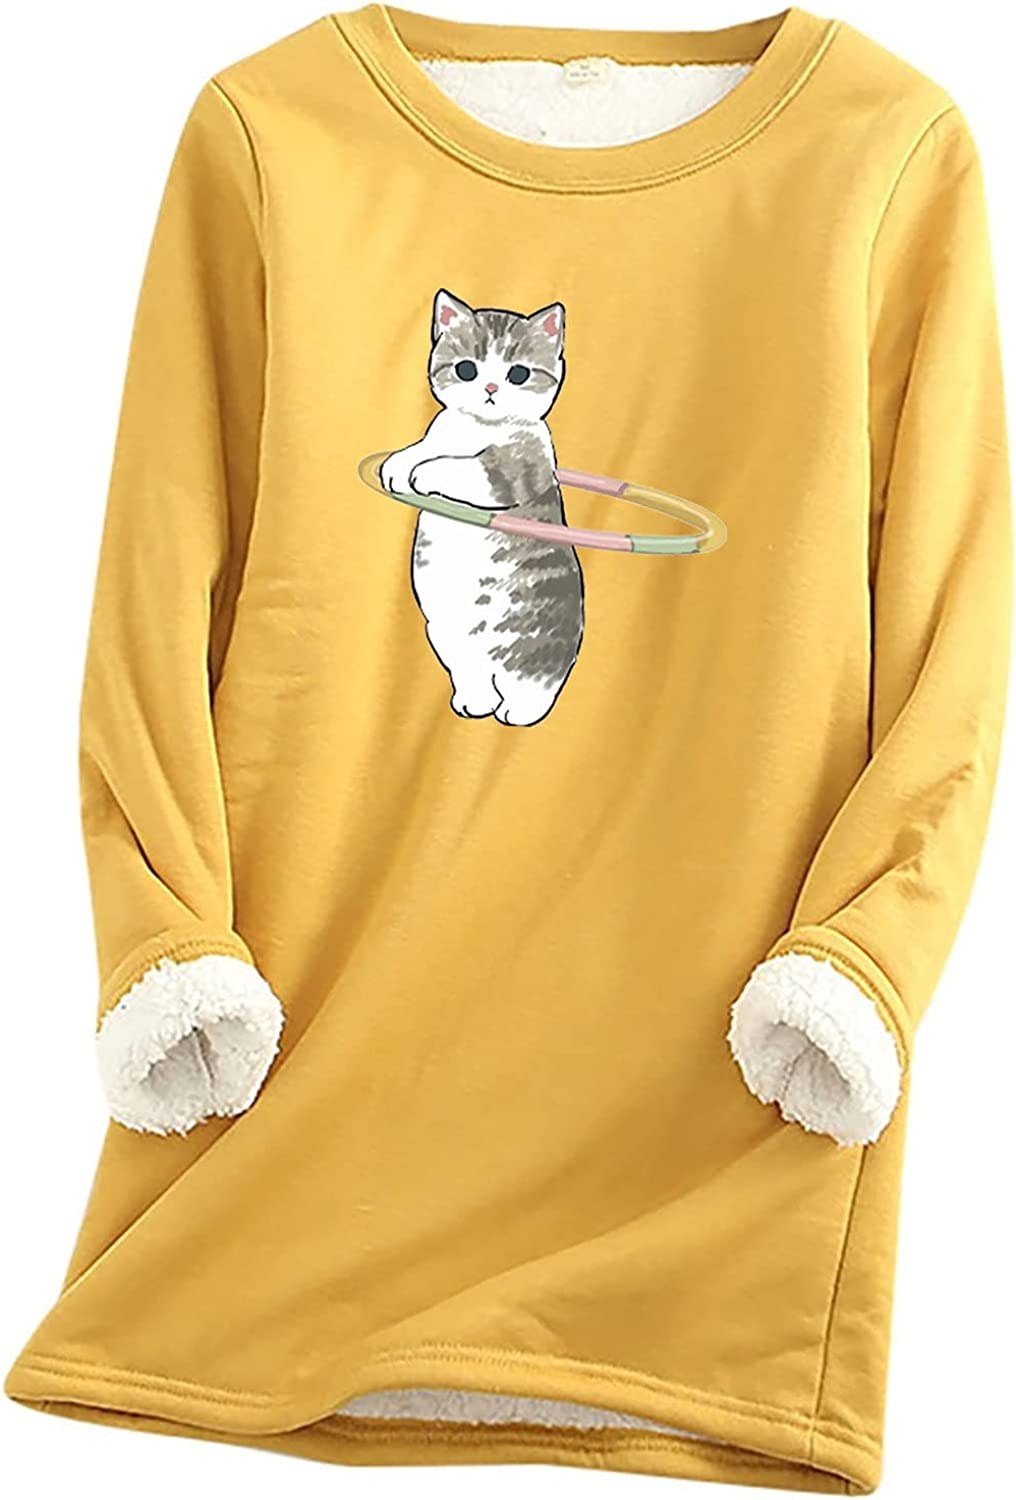 Fall Winter Tops for Women 2021 Fleece Crew Neck Cute Printed Loungewear Thermal Long Shirts Casual Pull Over Blouses